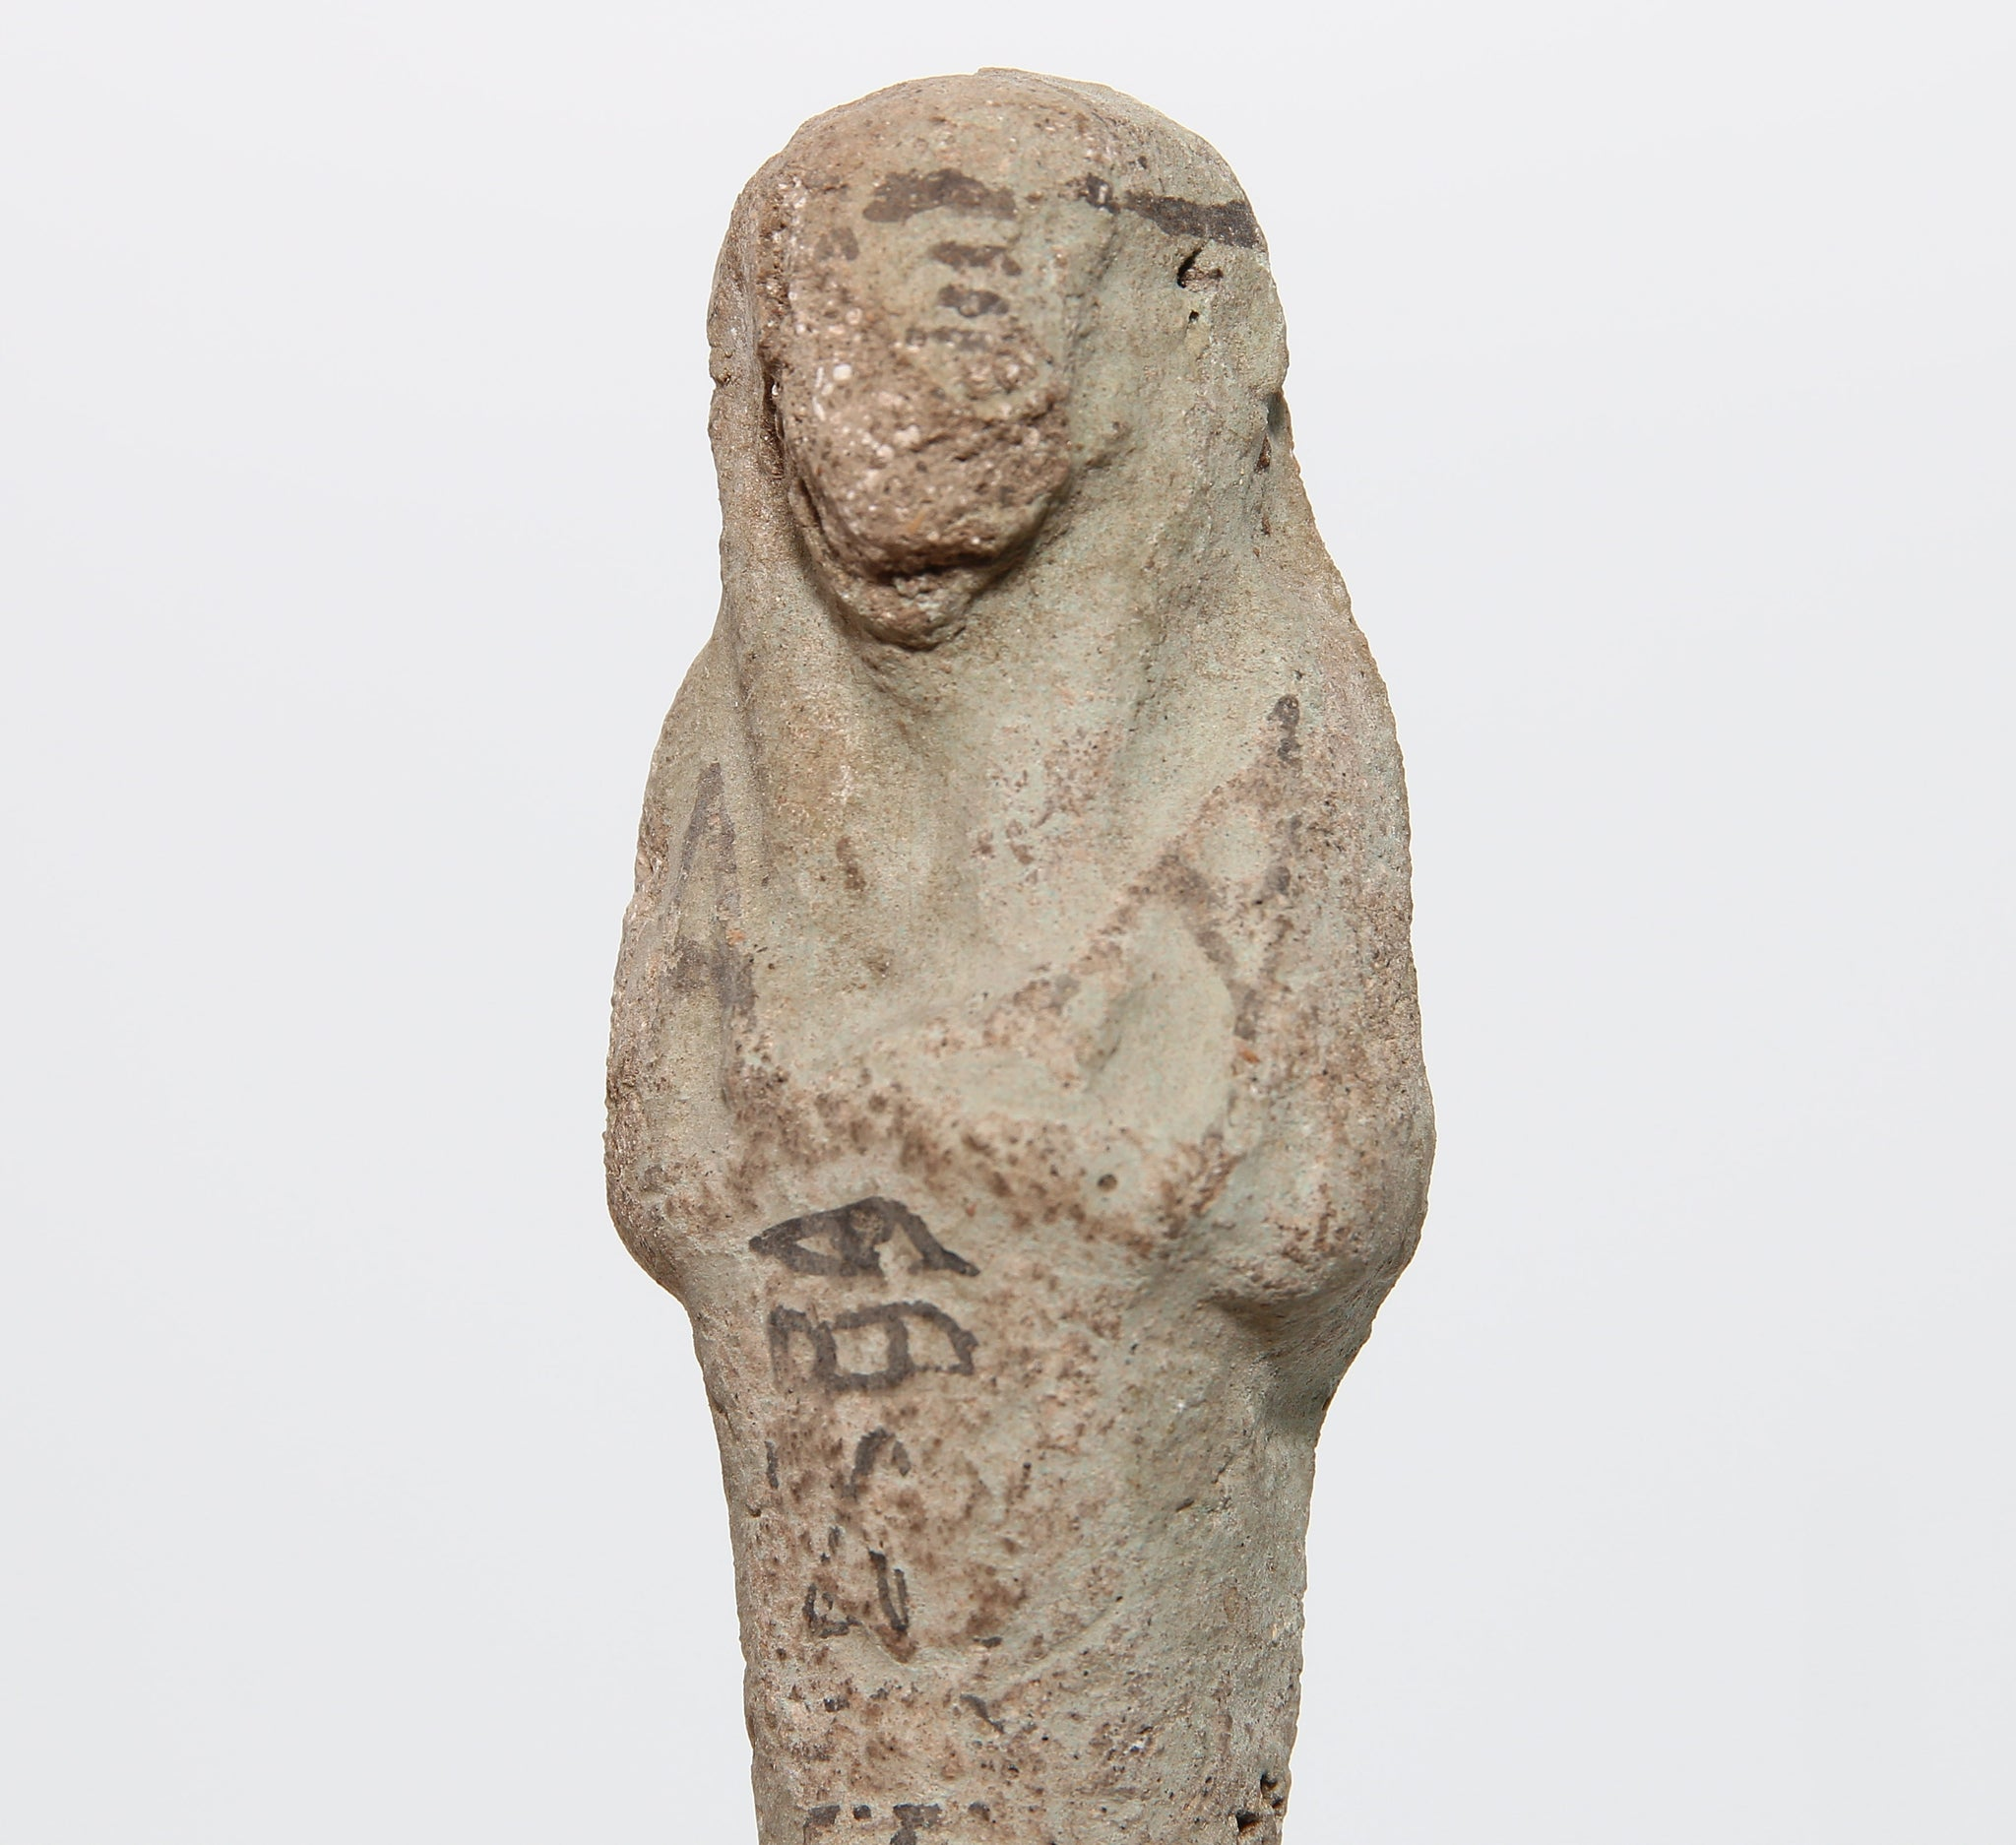 A pottery shabti figure with painted inscription | Egypt, Third Intermediate Period, 1050-730 BC